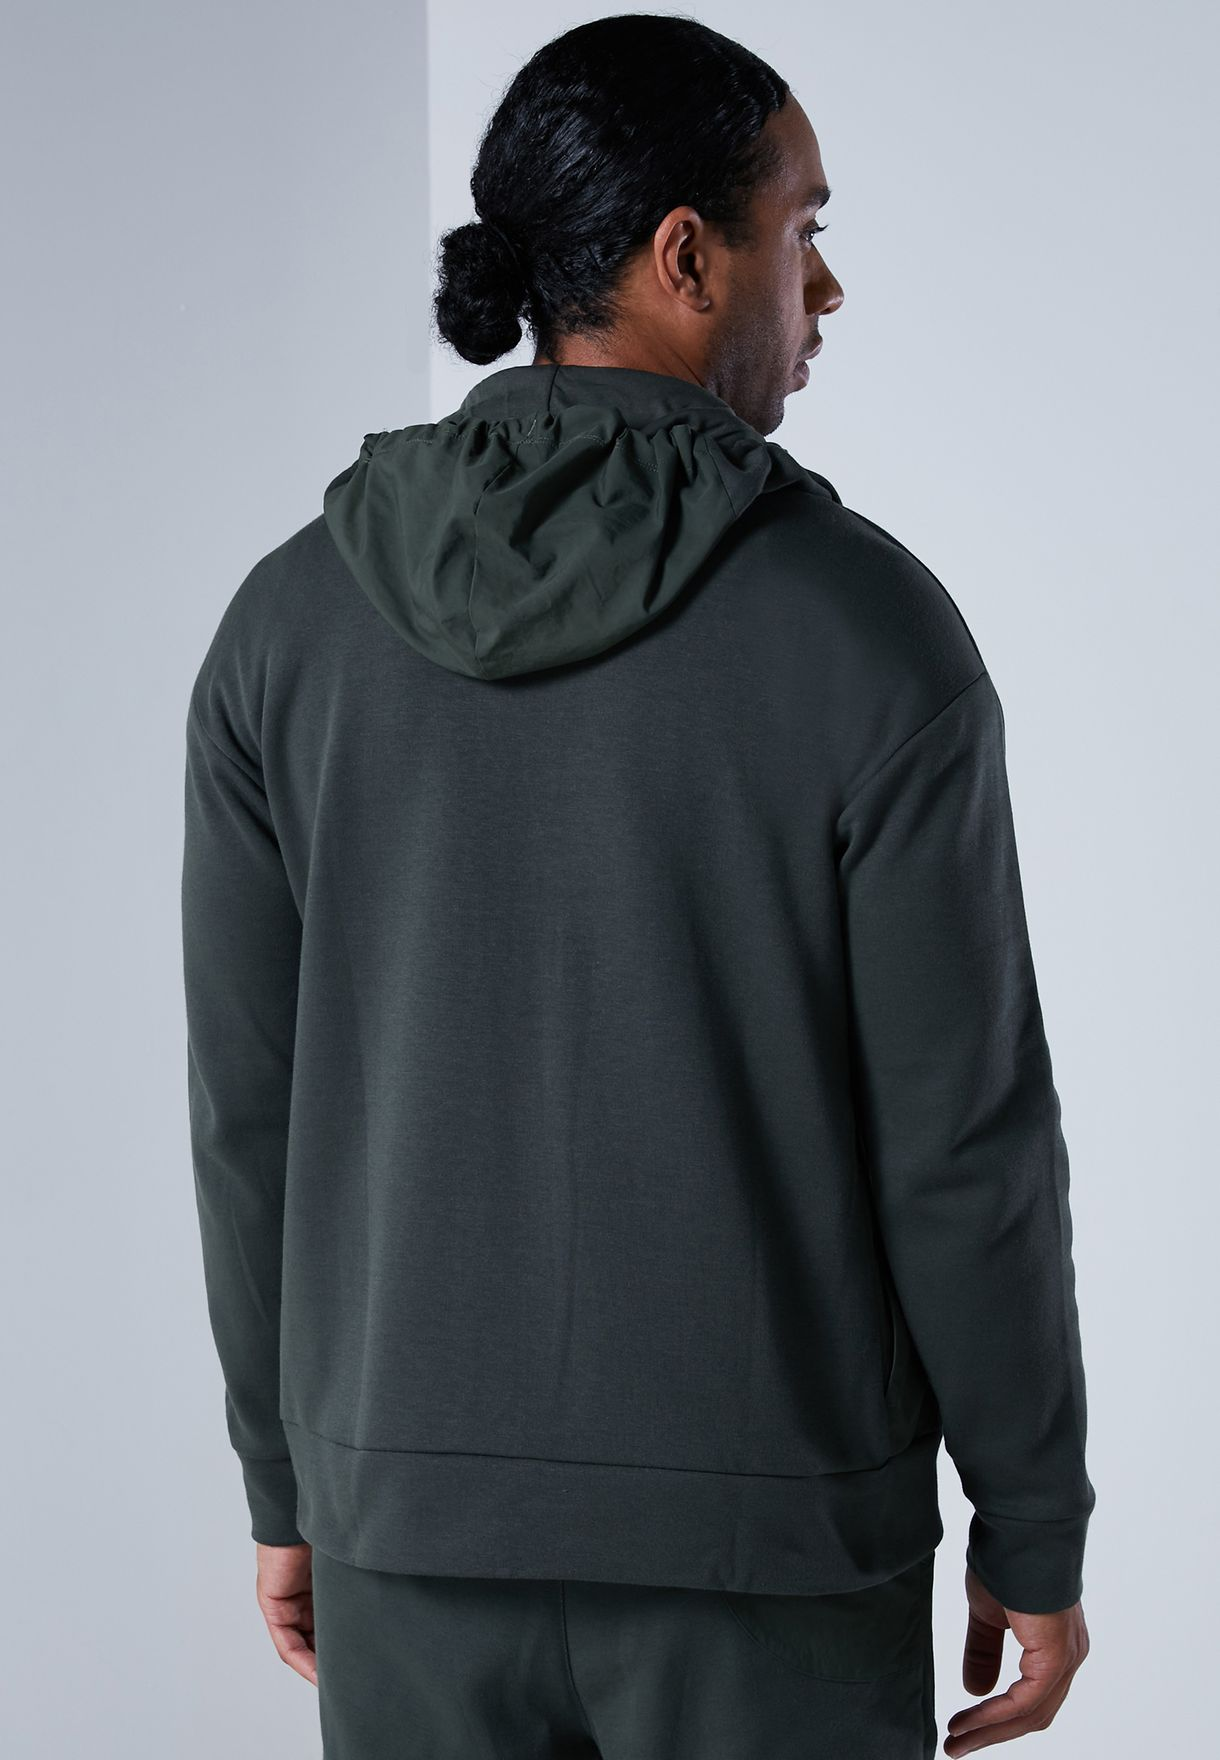 Training Supply Knit-Woven Hoodie